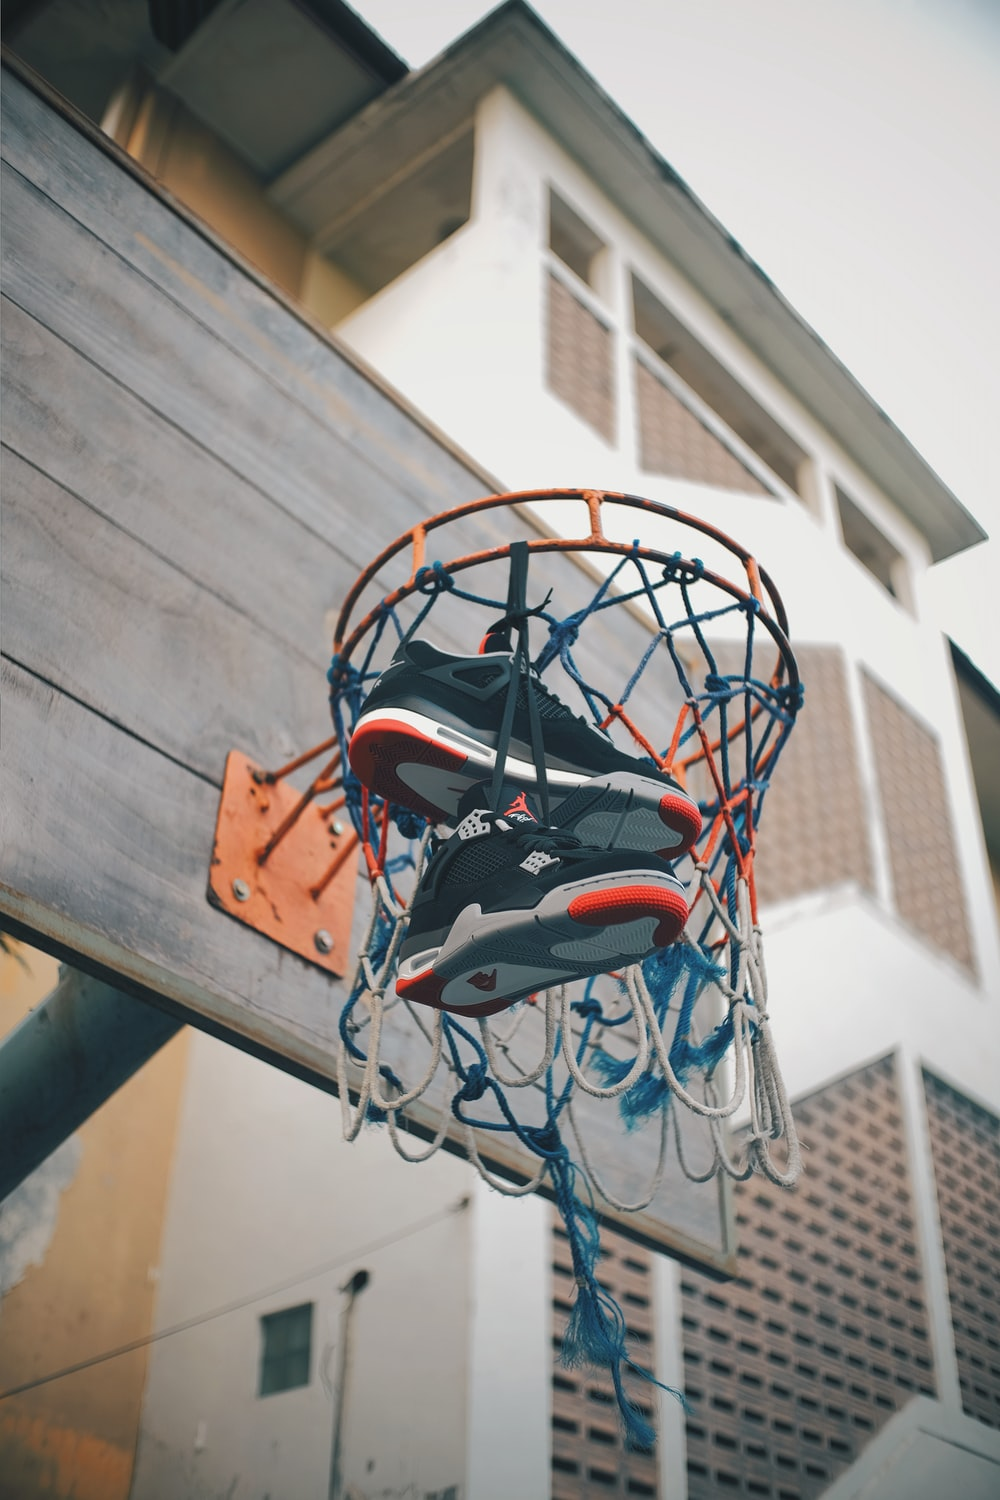 Air Jordan shoes in basketball hoop hanging on net during daytime